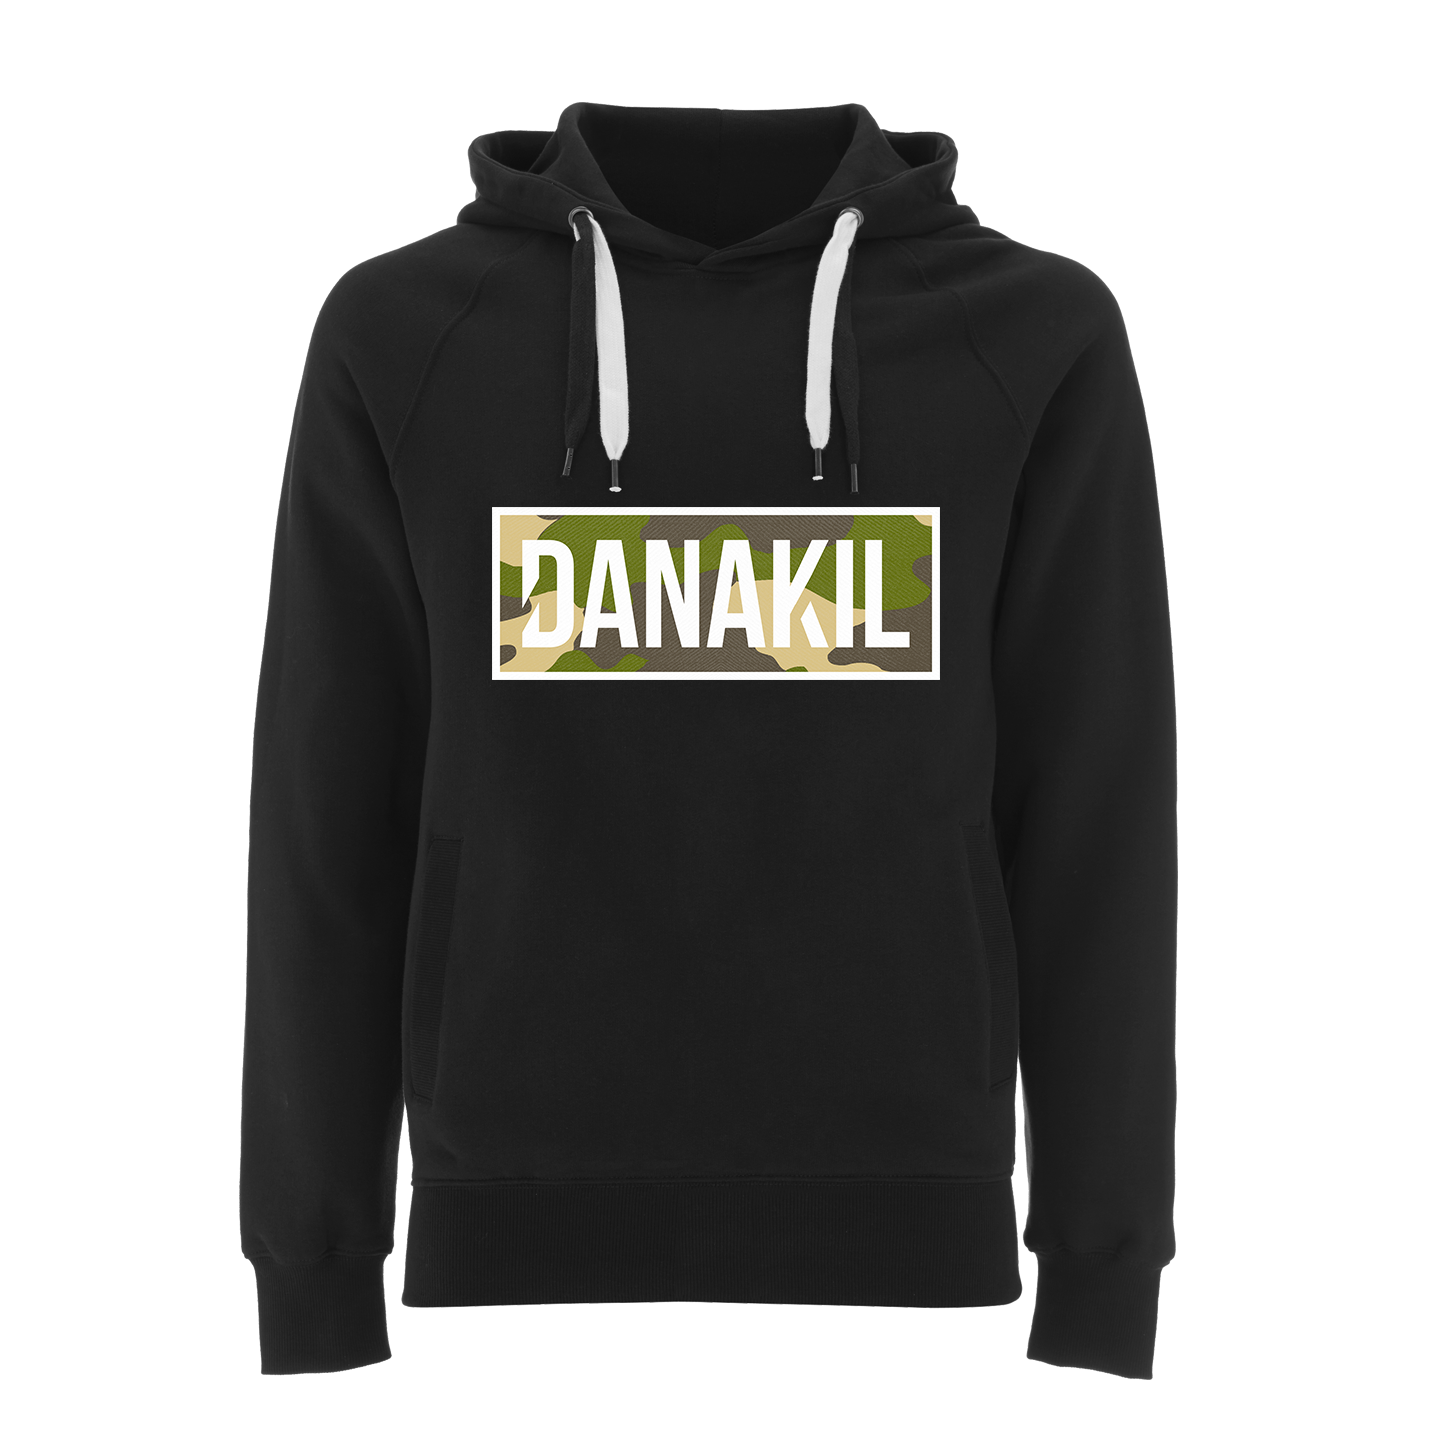 Sweat Shirt – Danakil Camouflage (Gris ou Noir) – BacoShop